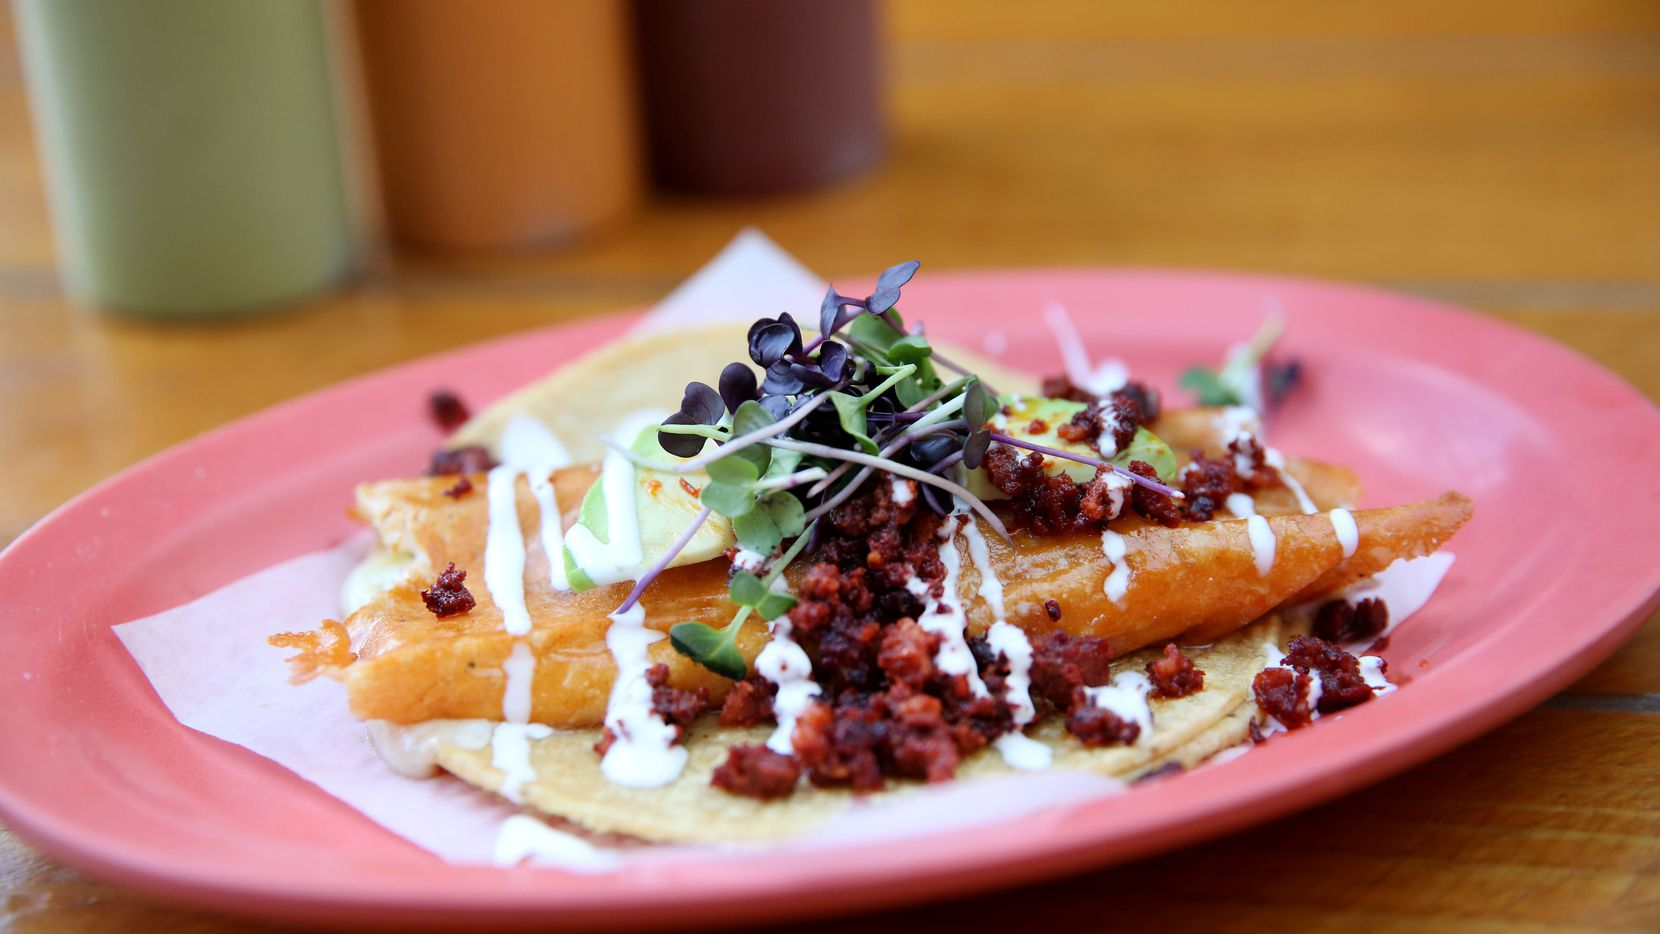 The spirit of Tacos Mariachi is returning to Dallas when owner Jesus Carmona's new taco shop Milagro opens in Trinity Groves.